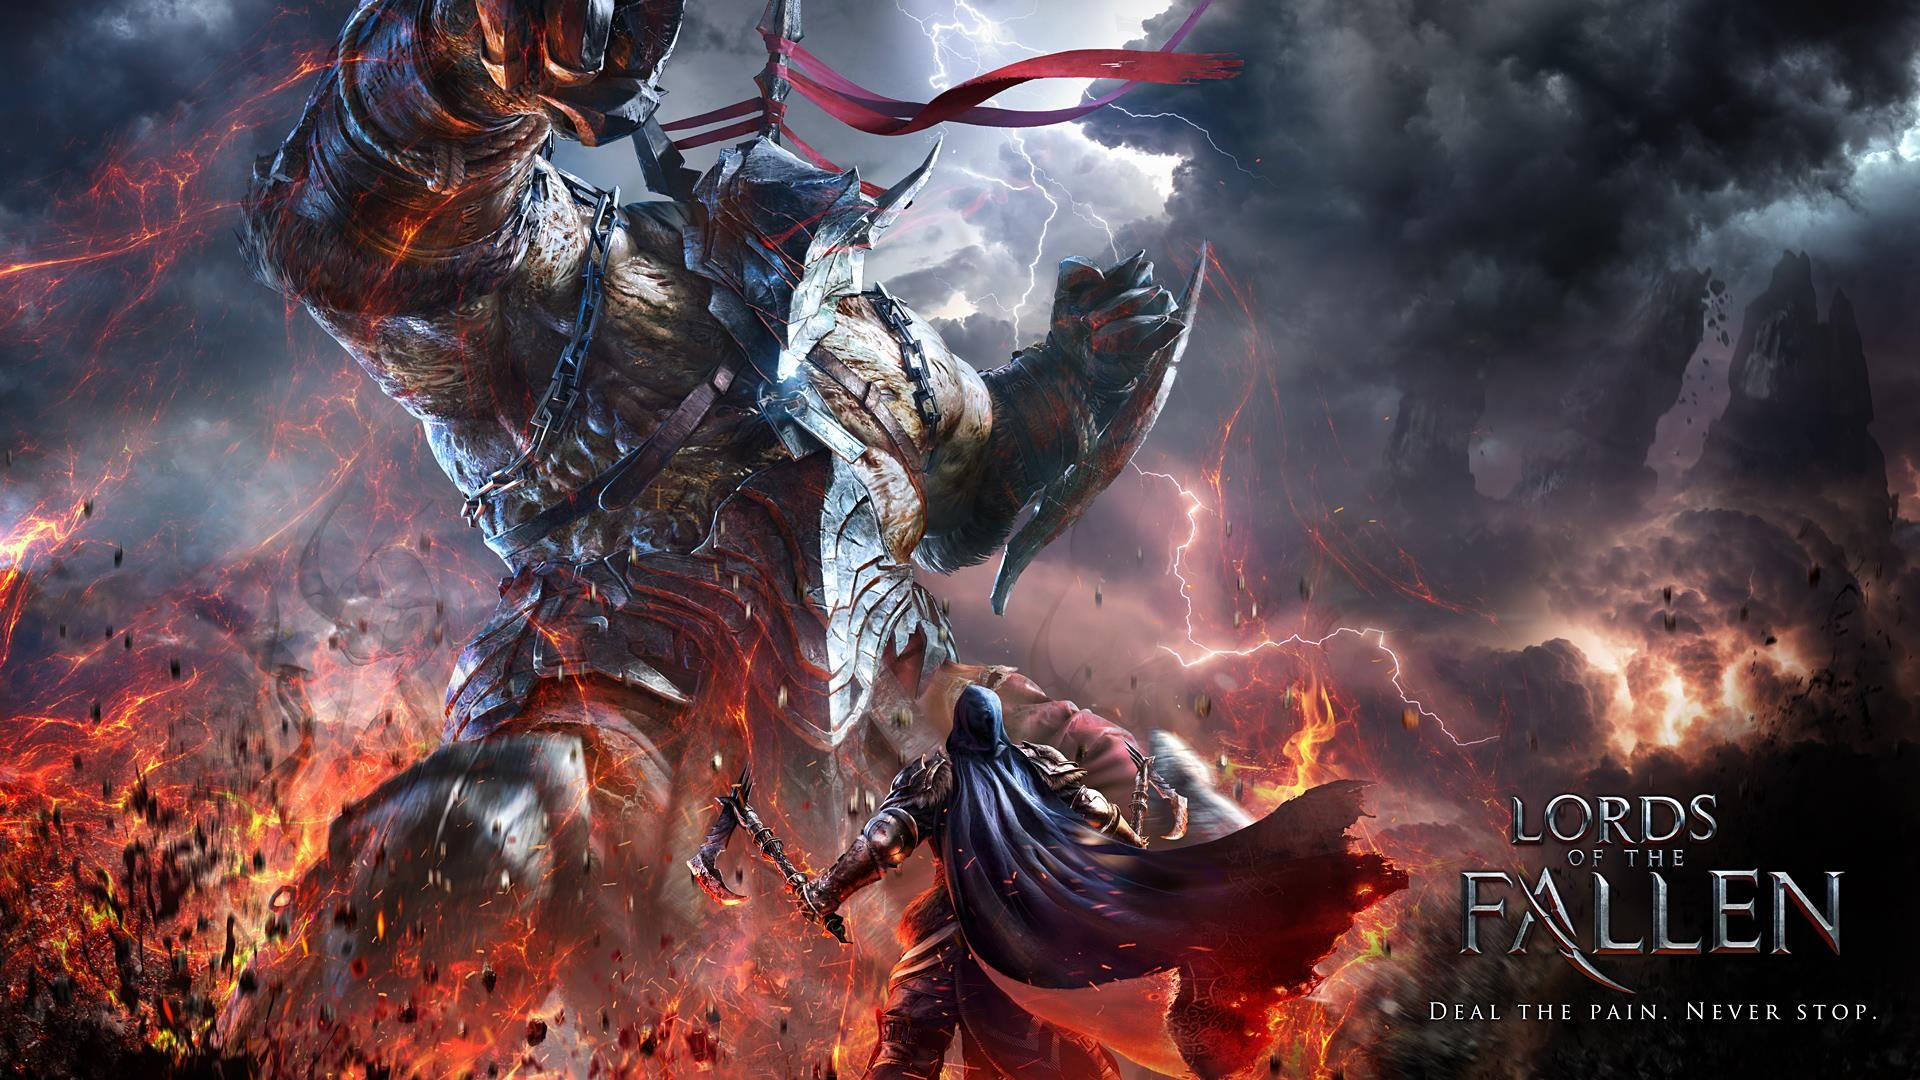 lords-of-the-fallen-arrivera-ios-android-9-febbraio-v4-284312